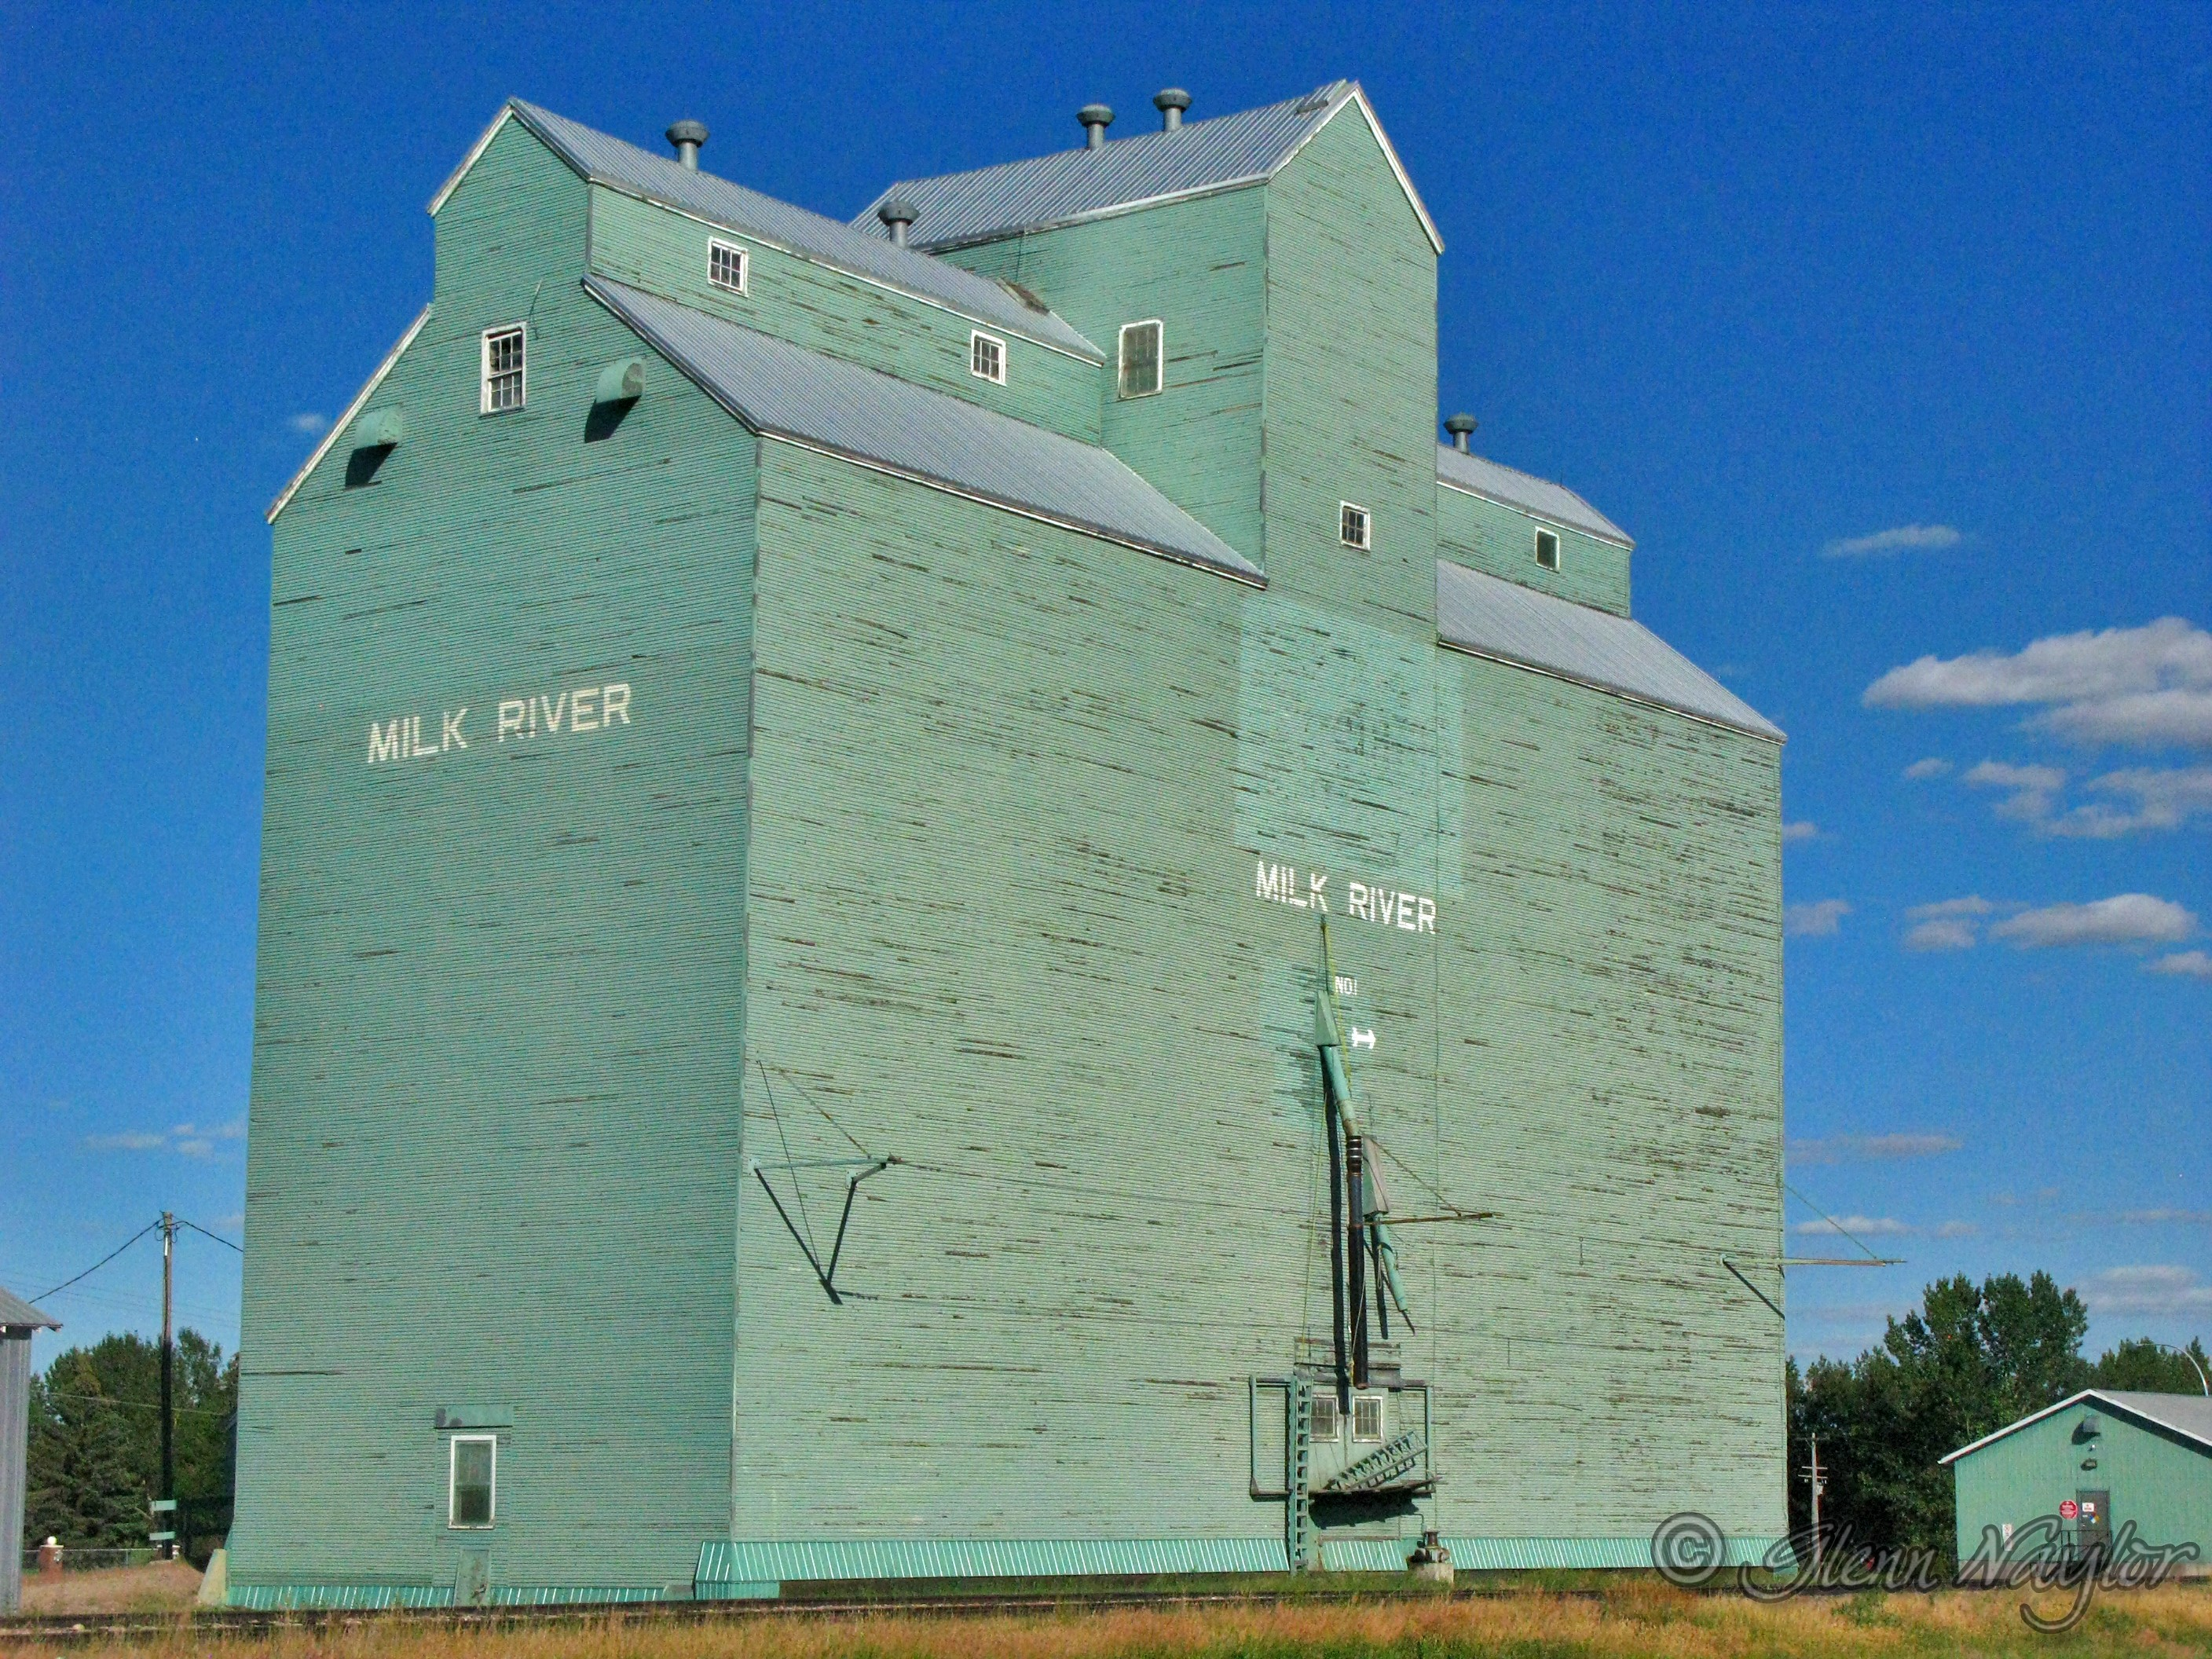 Grain elevator, Milk River, Alberta.